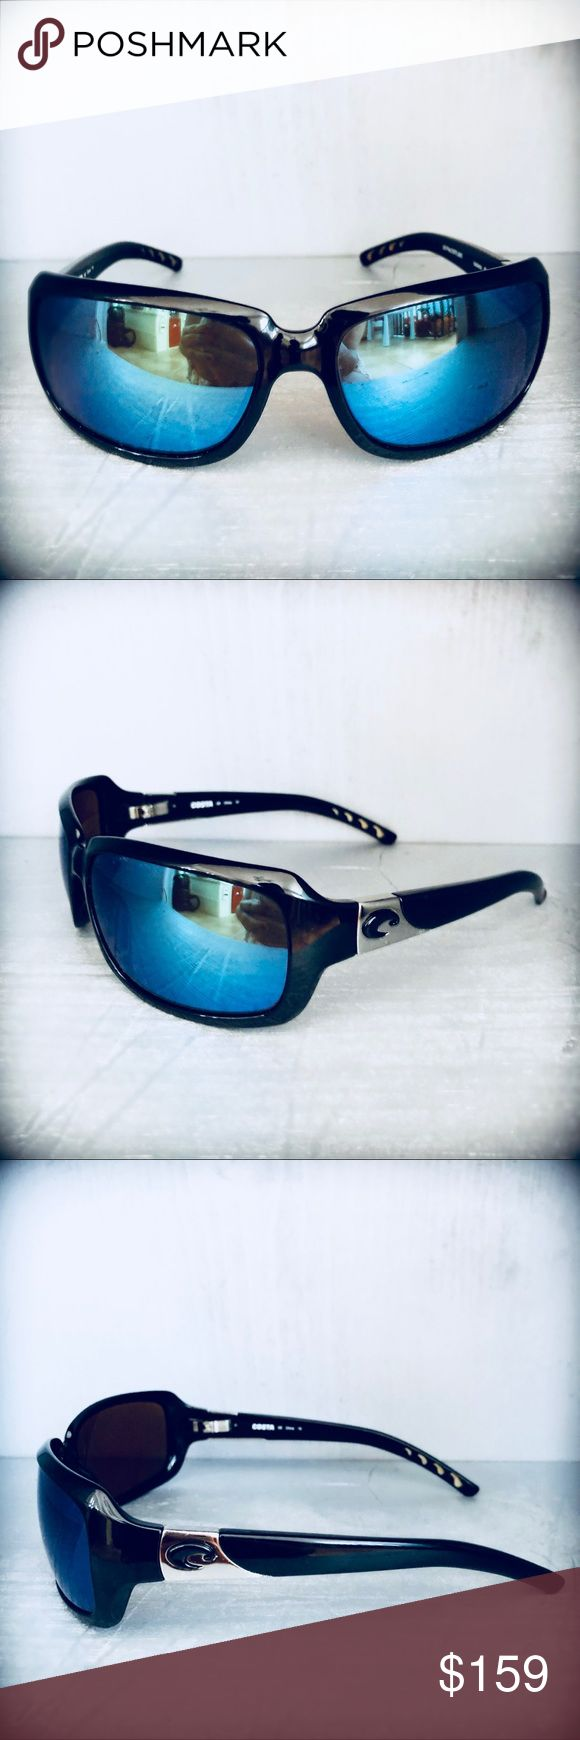 🌊🛥Costa Del Mar Sunglasses Isabela Beautiful preloved Costa Del Mar sunglasses in very good condition! They have lifetime warranty with Costa del Mar. They are 💯% authentic!   Specifications: Model: Isabela Frame fit: Large Frame color: Black  Lens color: Green Mirror Lens material: Polarized Plastic (580) Frame width: 127mm Bridge width: 17.2mm Lens width: 63.2mm Lens height: 39.5mm Temple arm length: 124mm Costa Del Mar Accessories Sunglasses